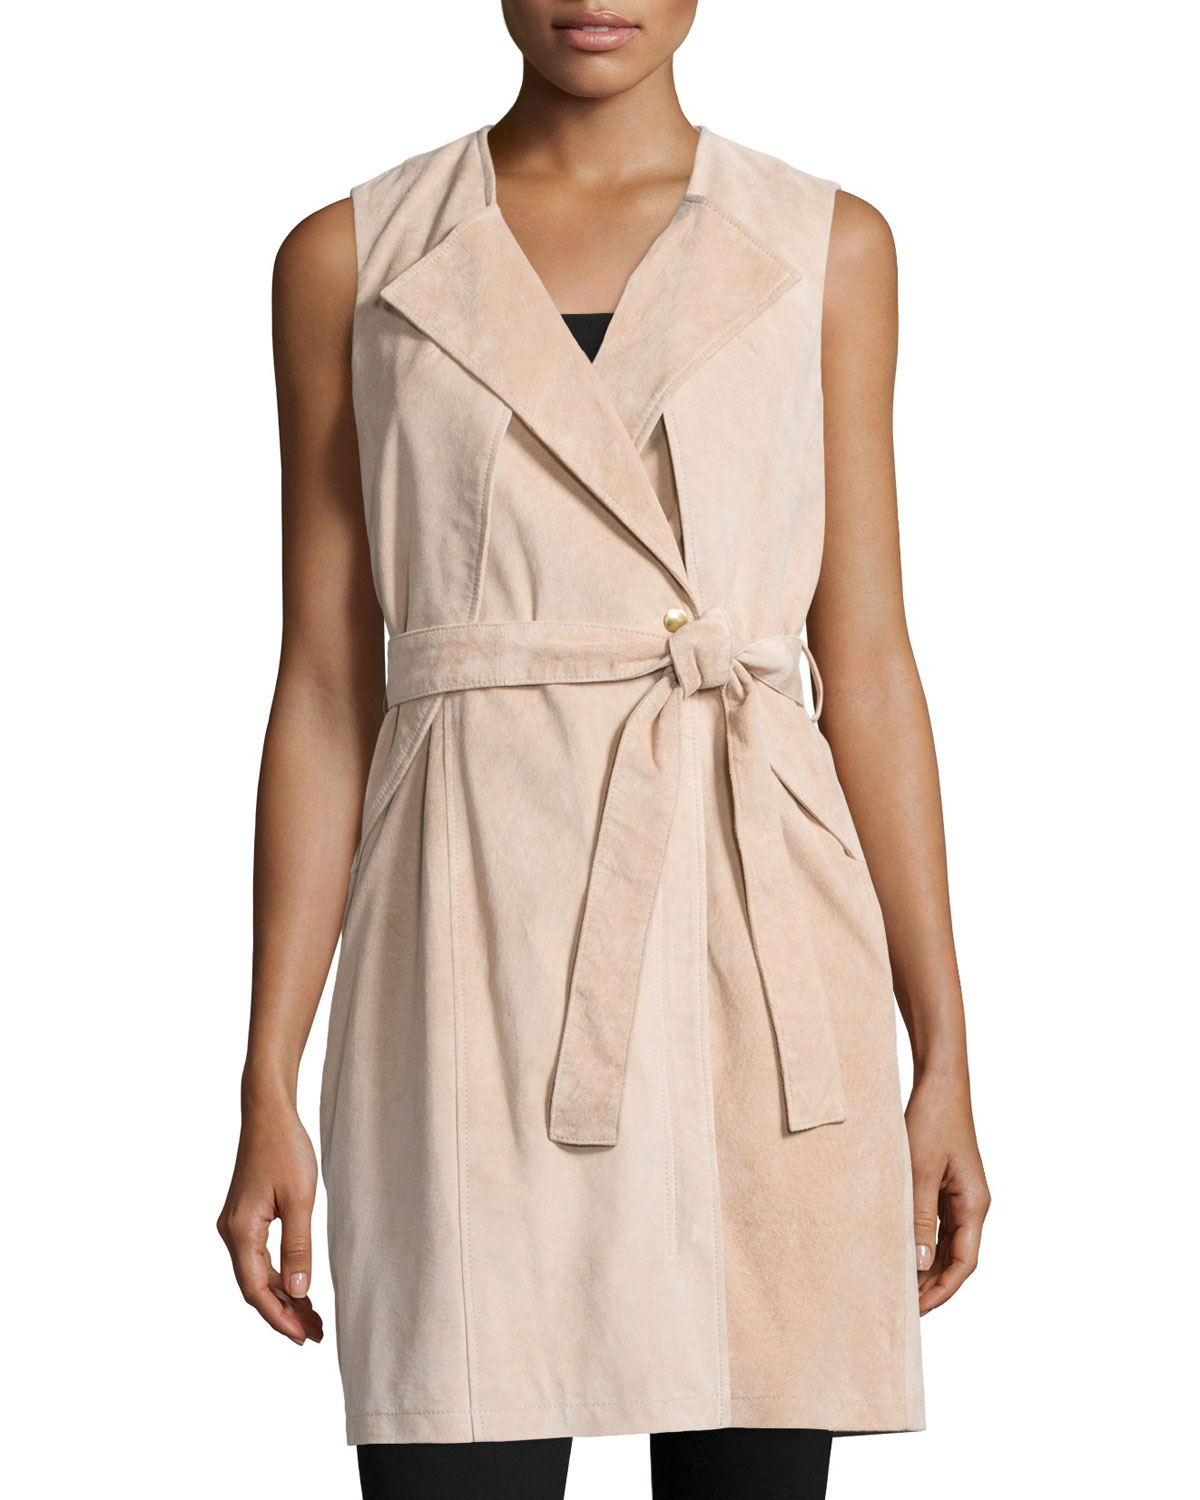 Belted Suede Trench Vest, Blush, Size: L/1012 - Neiman Marcus